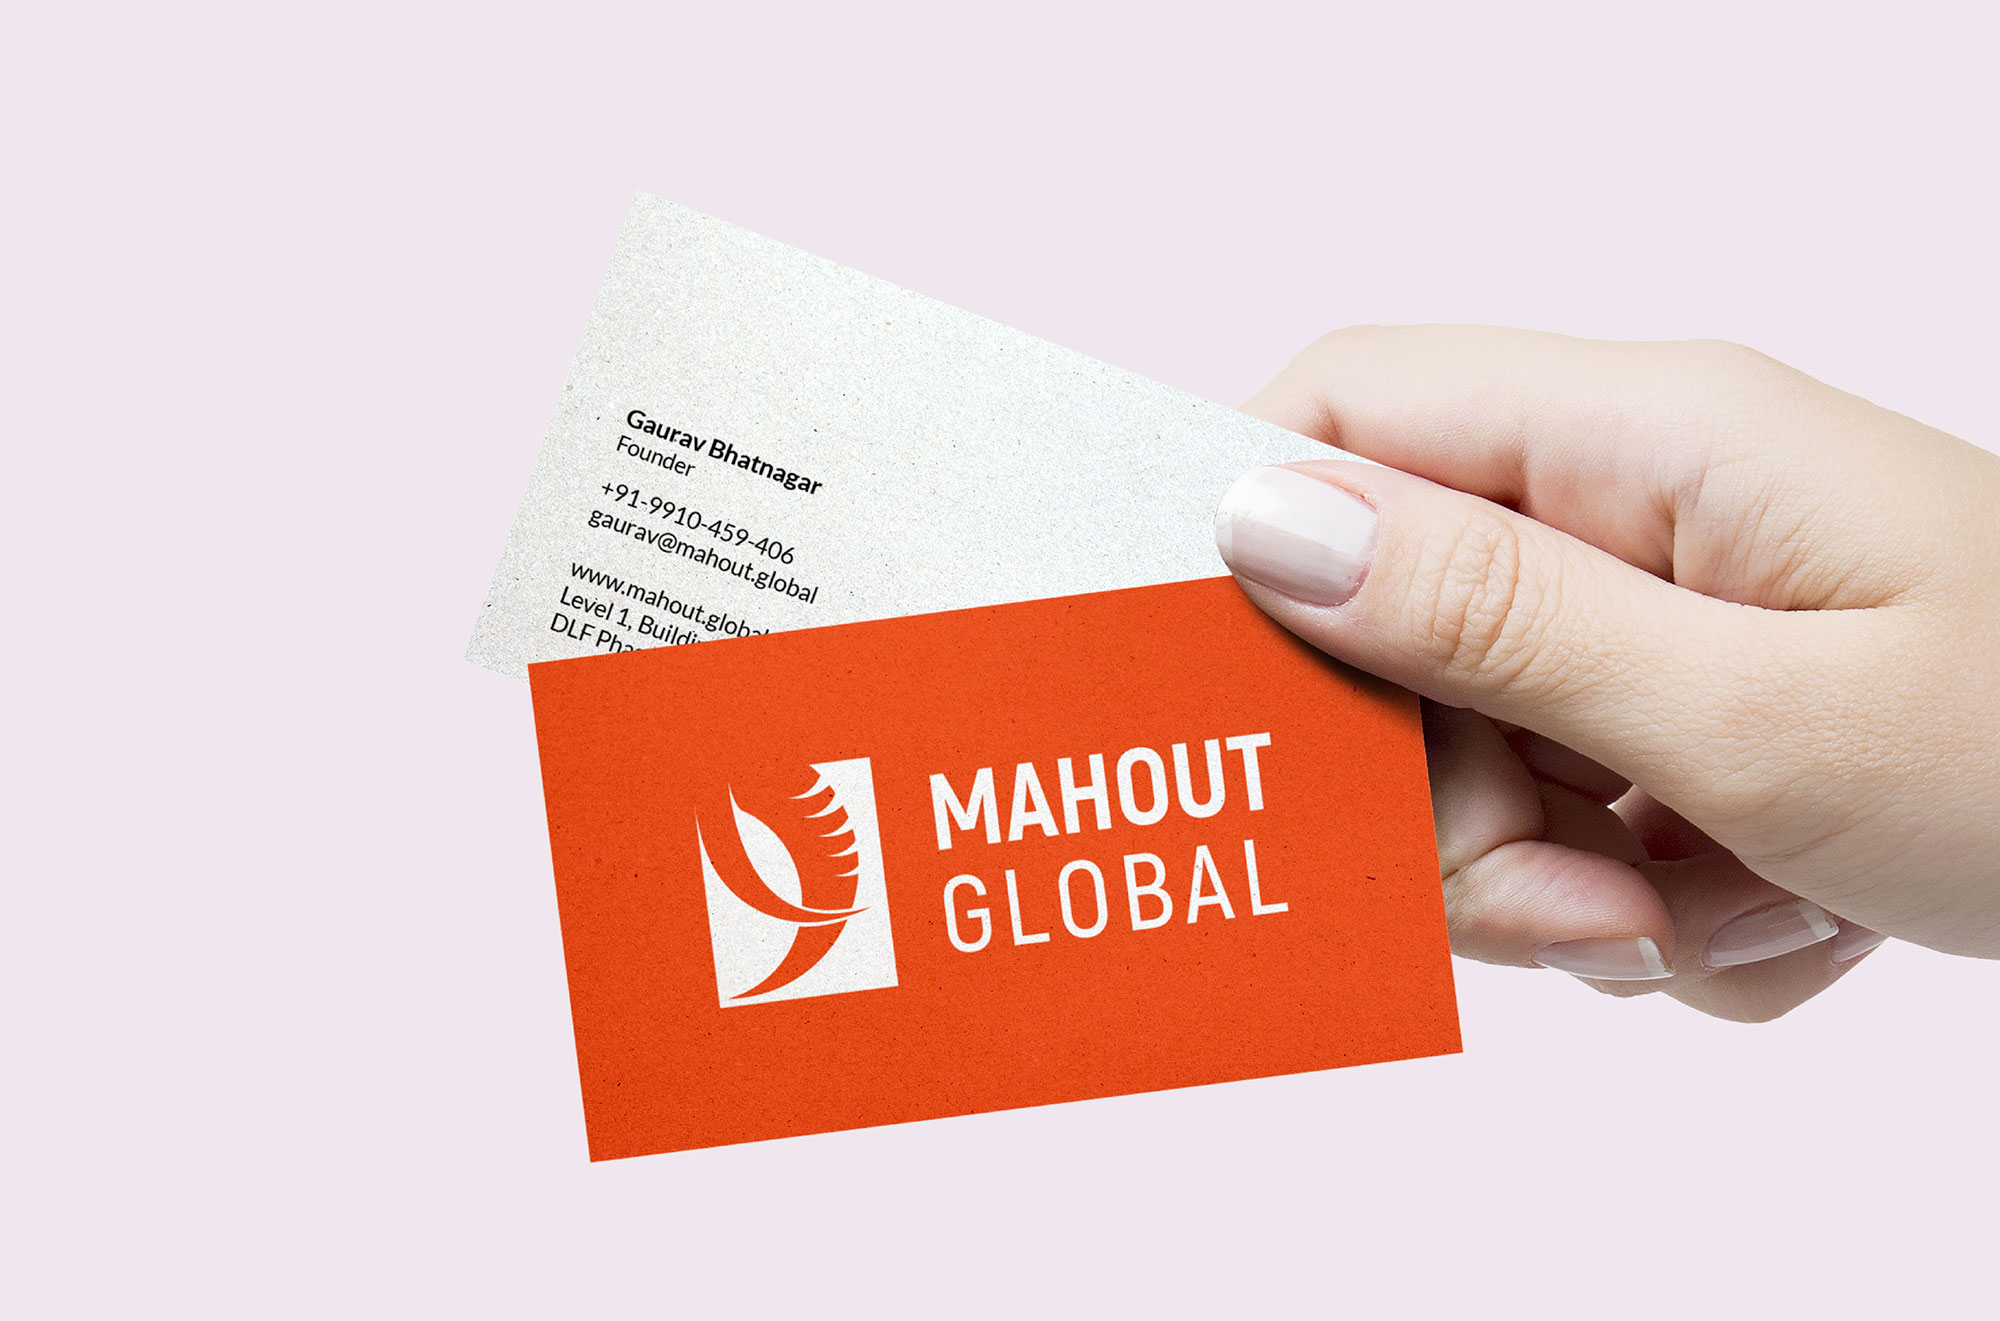 Mahout Global Contact Details